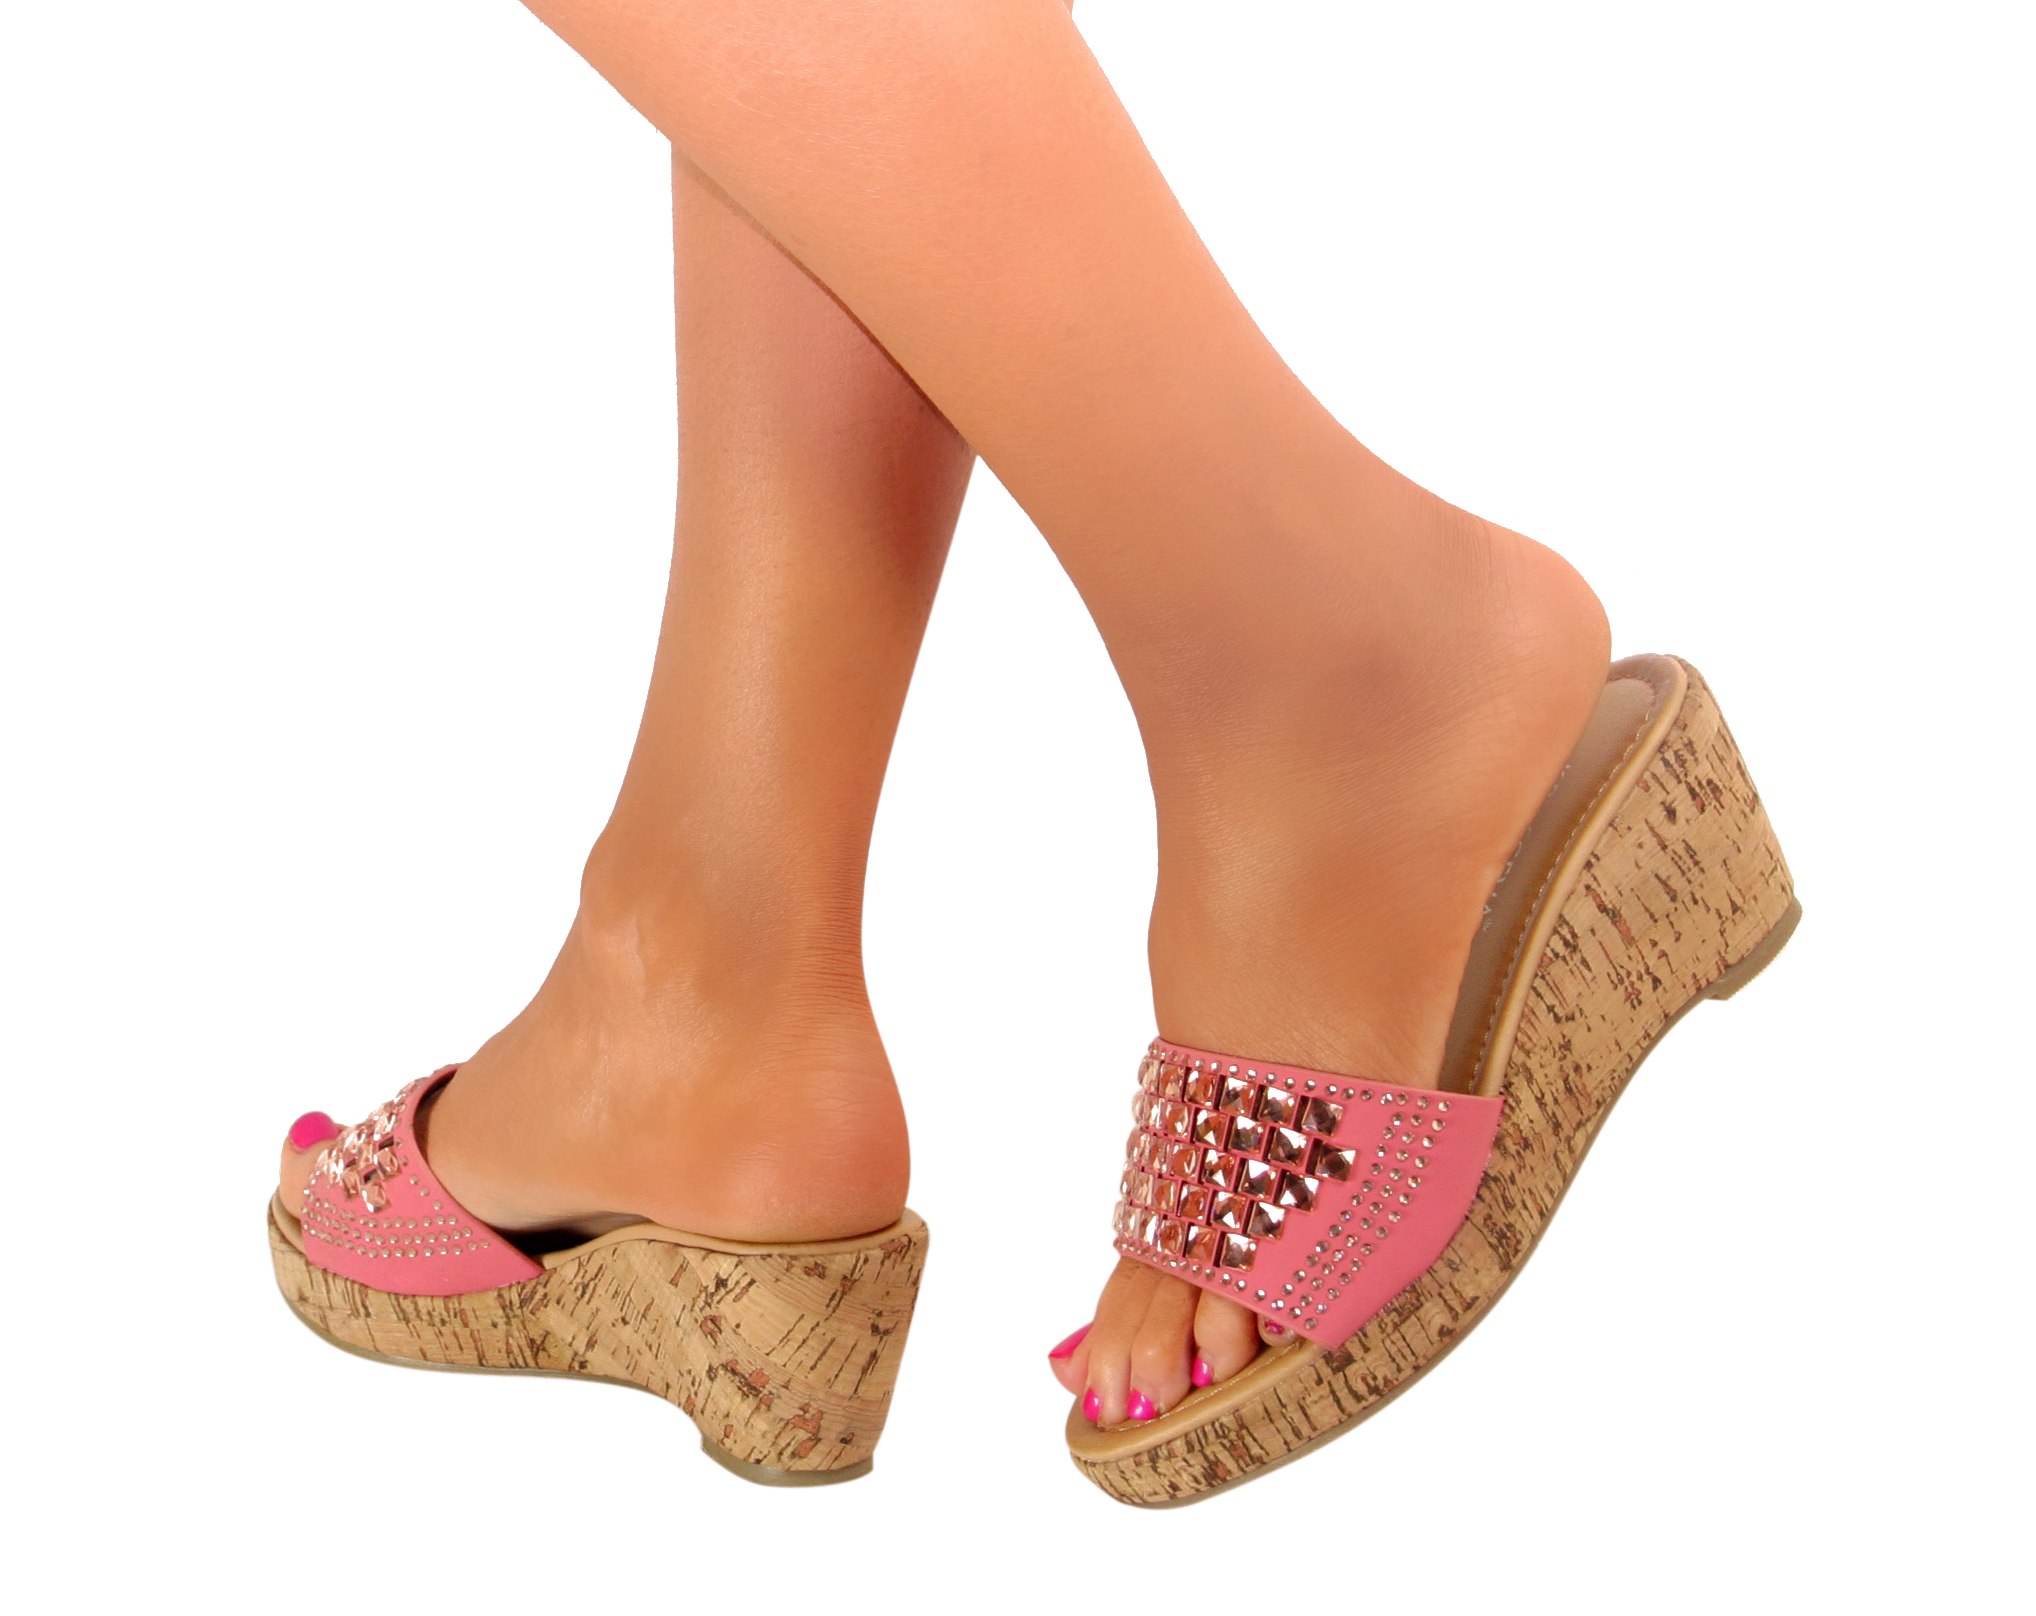 Home / Flip Flops / 16 Best Flip Flops For Plantar Fasciitis 16 Best Flip Flops For Plantar Fasciitis If your heel pain comes and goes throughout the day, perhaps you need to re-think your overall treatment plan for plantar fasciitis.